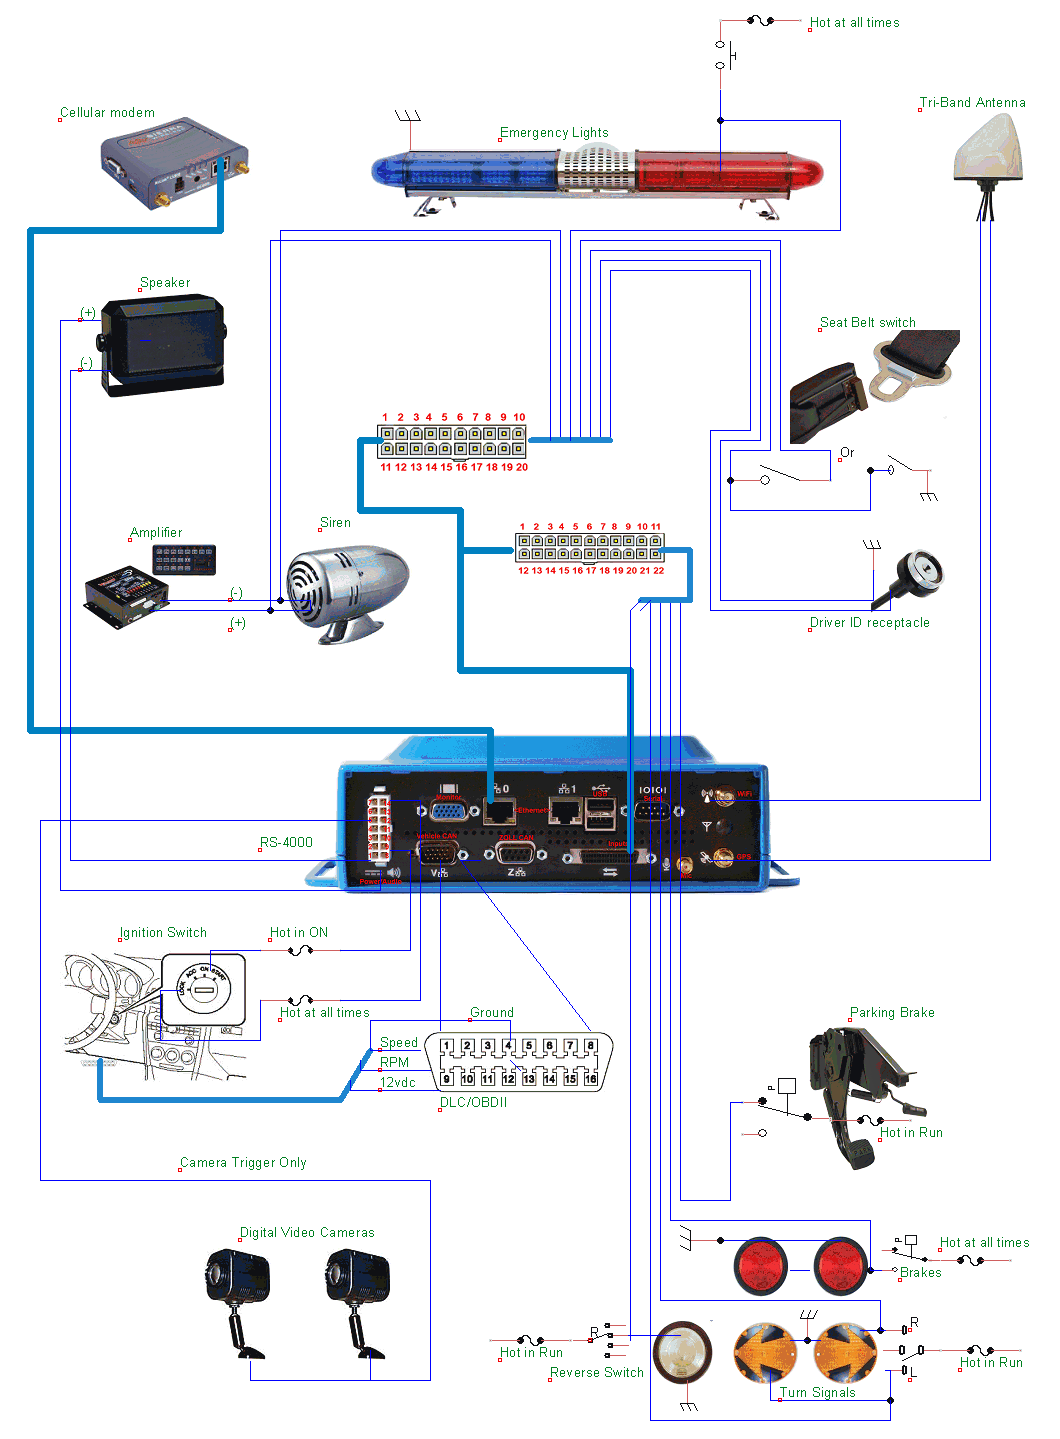 Digital Ally Wiring Diagram Trusted Schematics Electrical Diagrams Video Camera Road Safety Rs 4000 System Overview And Installation Version 4 13 Basic Schematic Connectivity